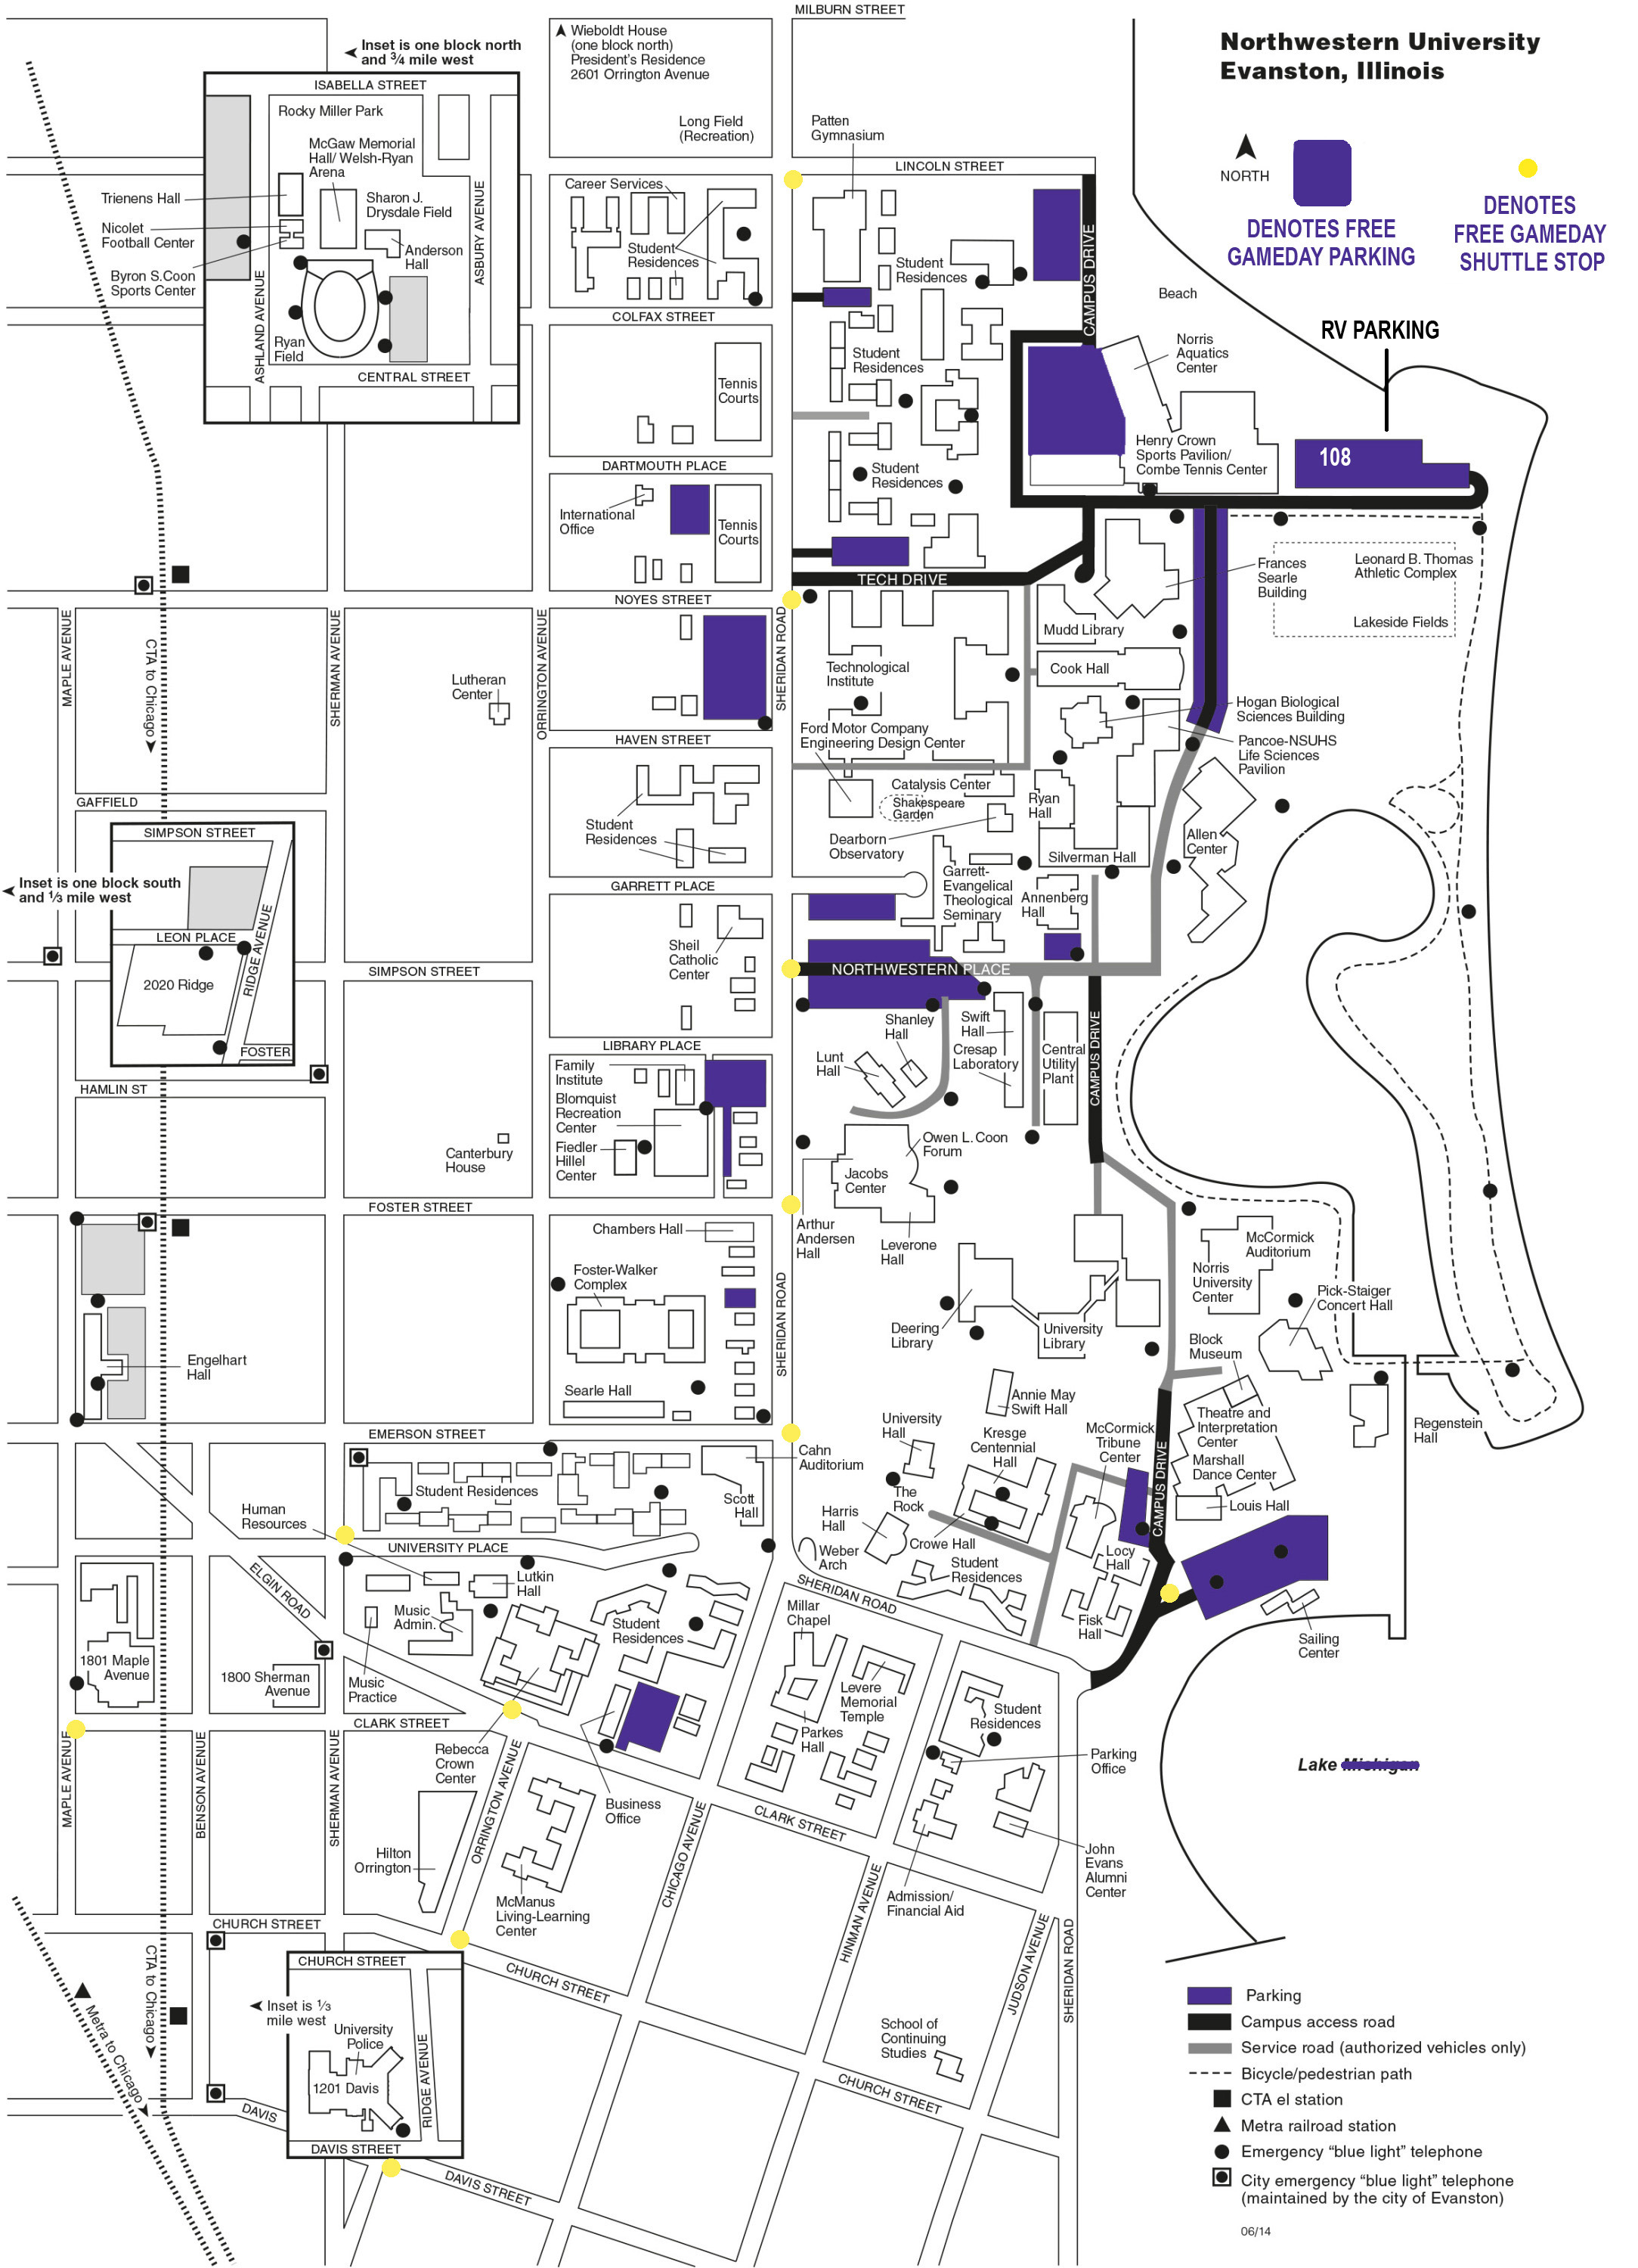 Northwestern vs. Illinois State Football: Everything You ... on richmond parking map, xavier parking map, hofstra parking map, drake parking map, bradley parking map, memphis parking map, miami of ohio parking map, bucknell parking map, school of mines parking map, illinois state history, northern iowa parking map, nebraska parking map, coastal carolina parking map, utah parking map, gonzaga parking map, army parking map, ipfw parking map, uc irvine parking map, semo parking map, mississippi parking map,